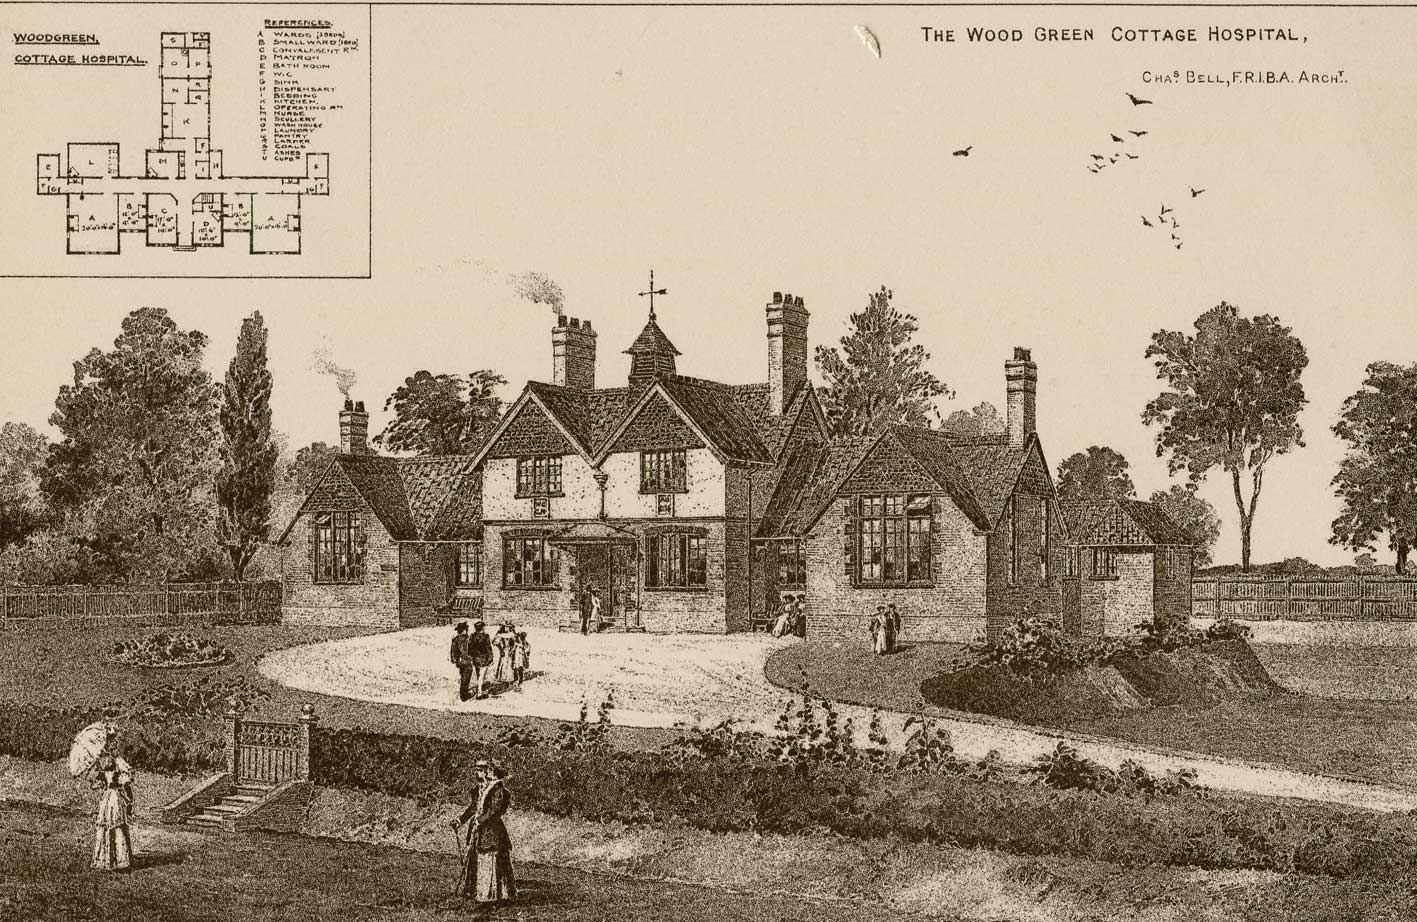 Passmore Edwards' Wood Green Cottage Hospital